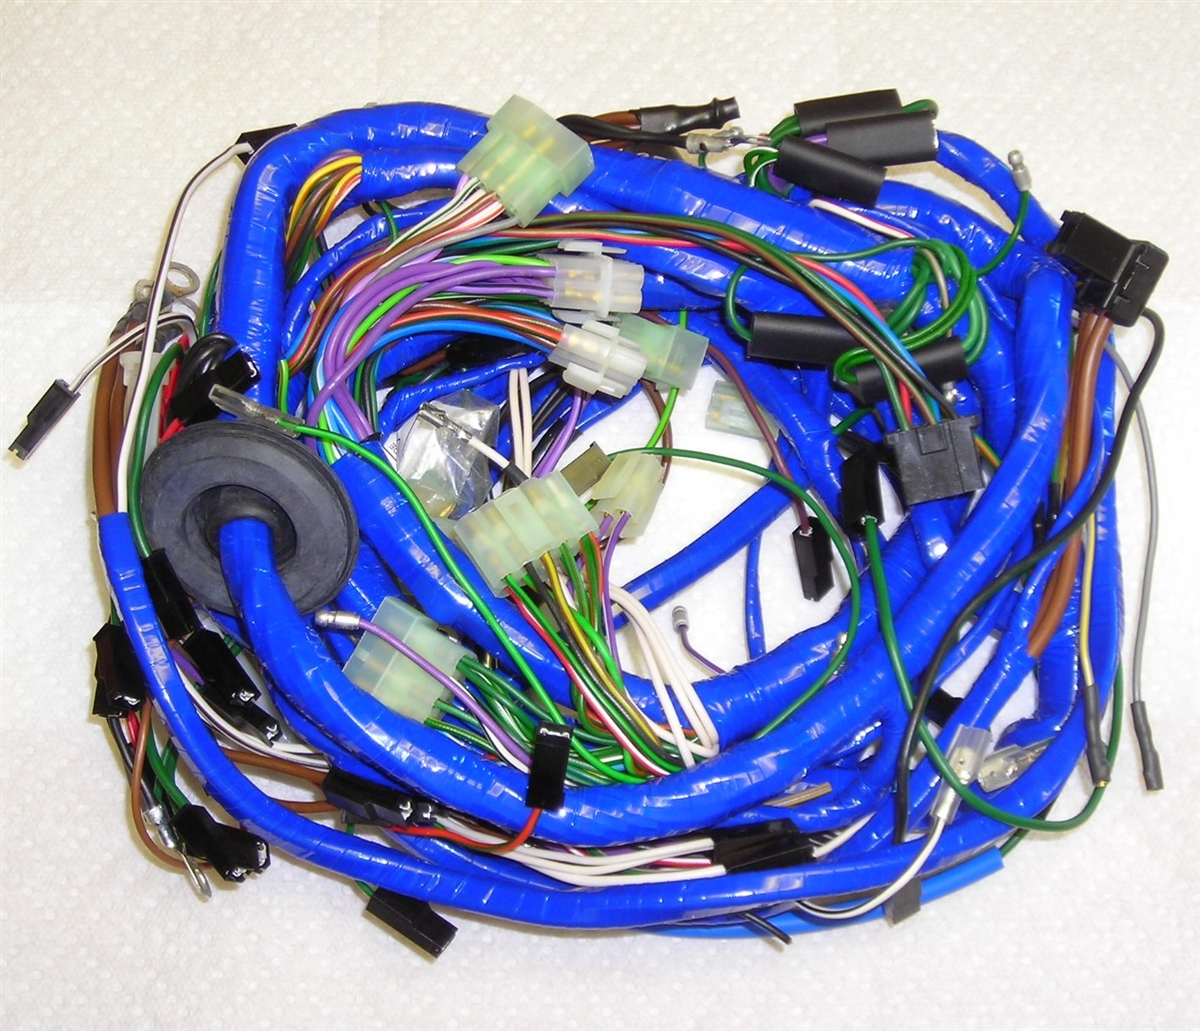 mgb 1980 main wiring harness (522) 74 mgb wire harness